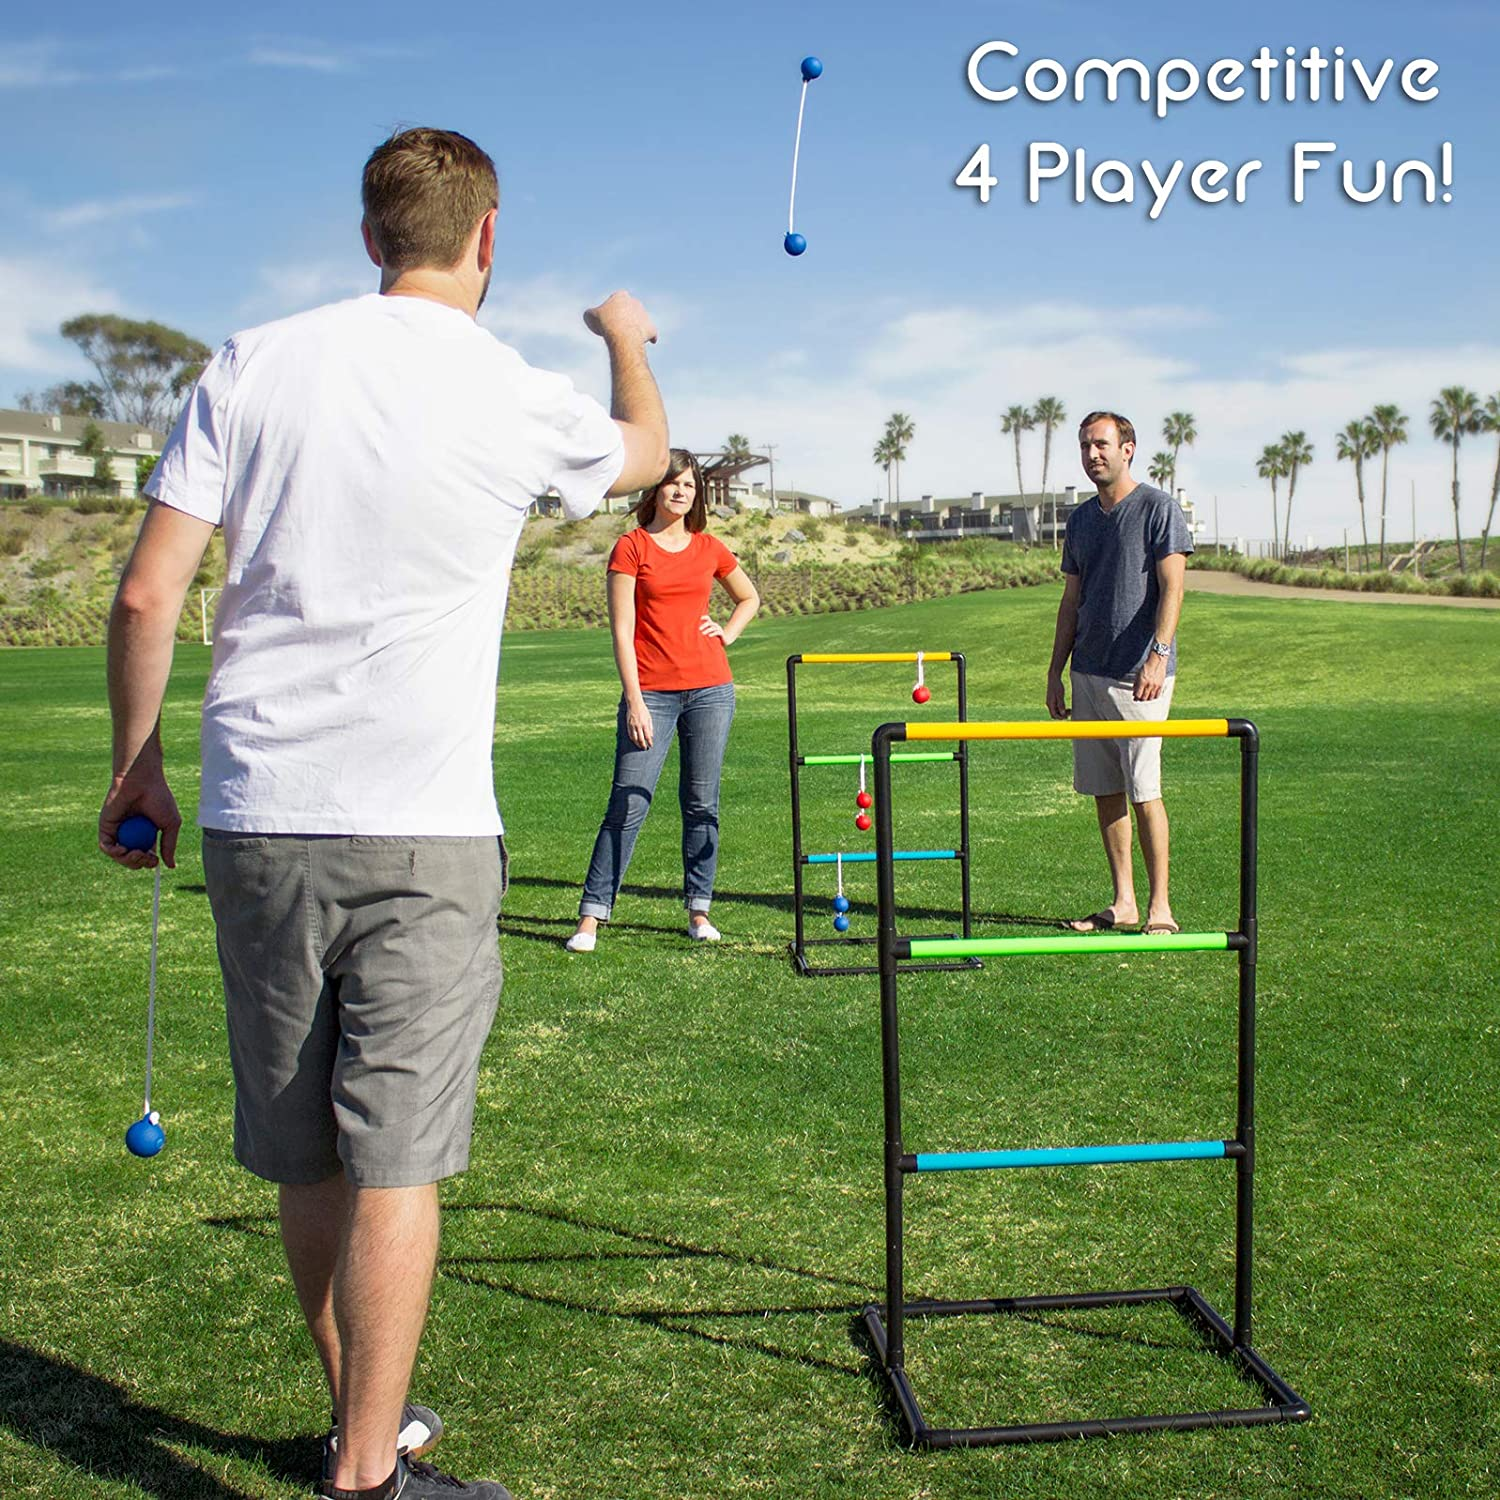 GoSports Pro Grade Ladder Toss outdoor games for adults